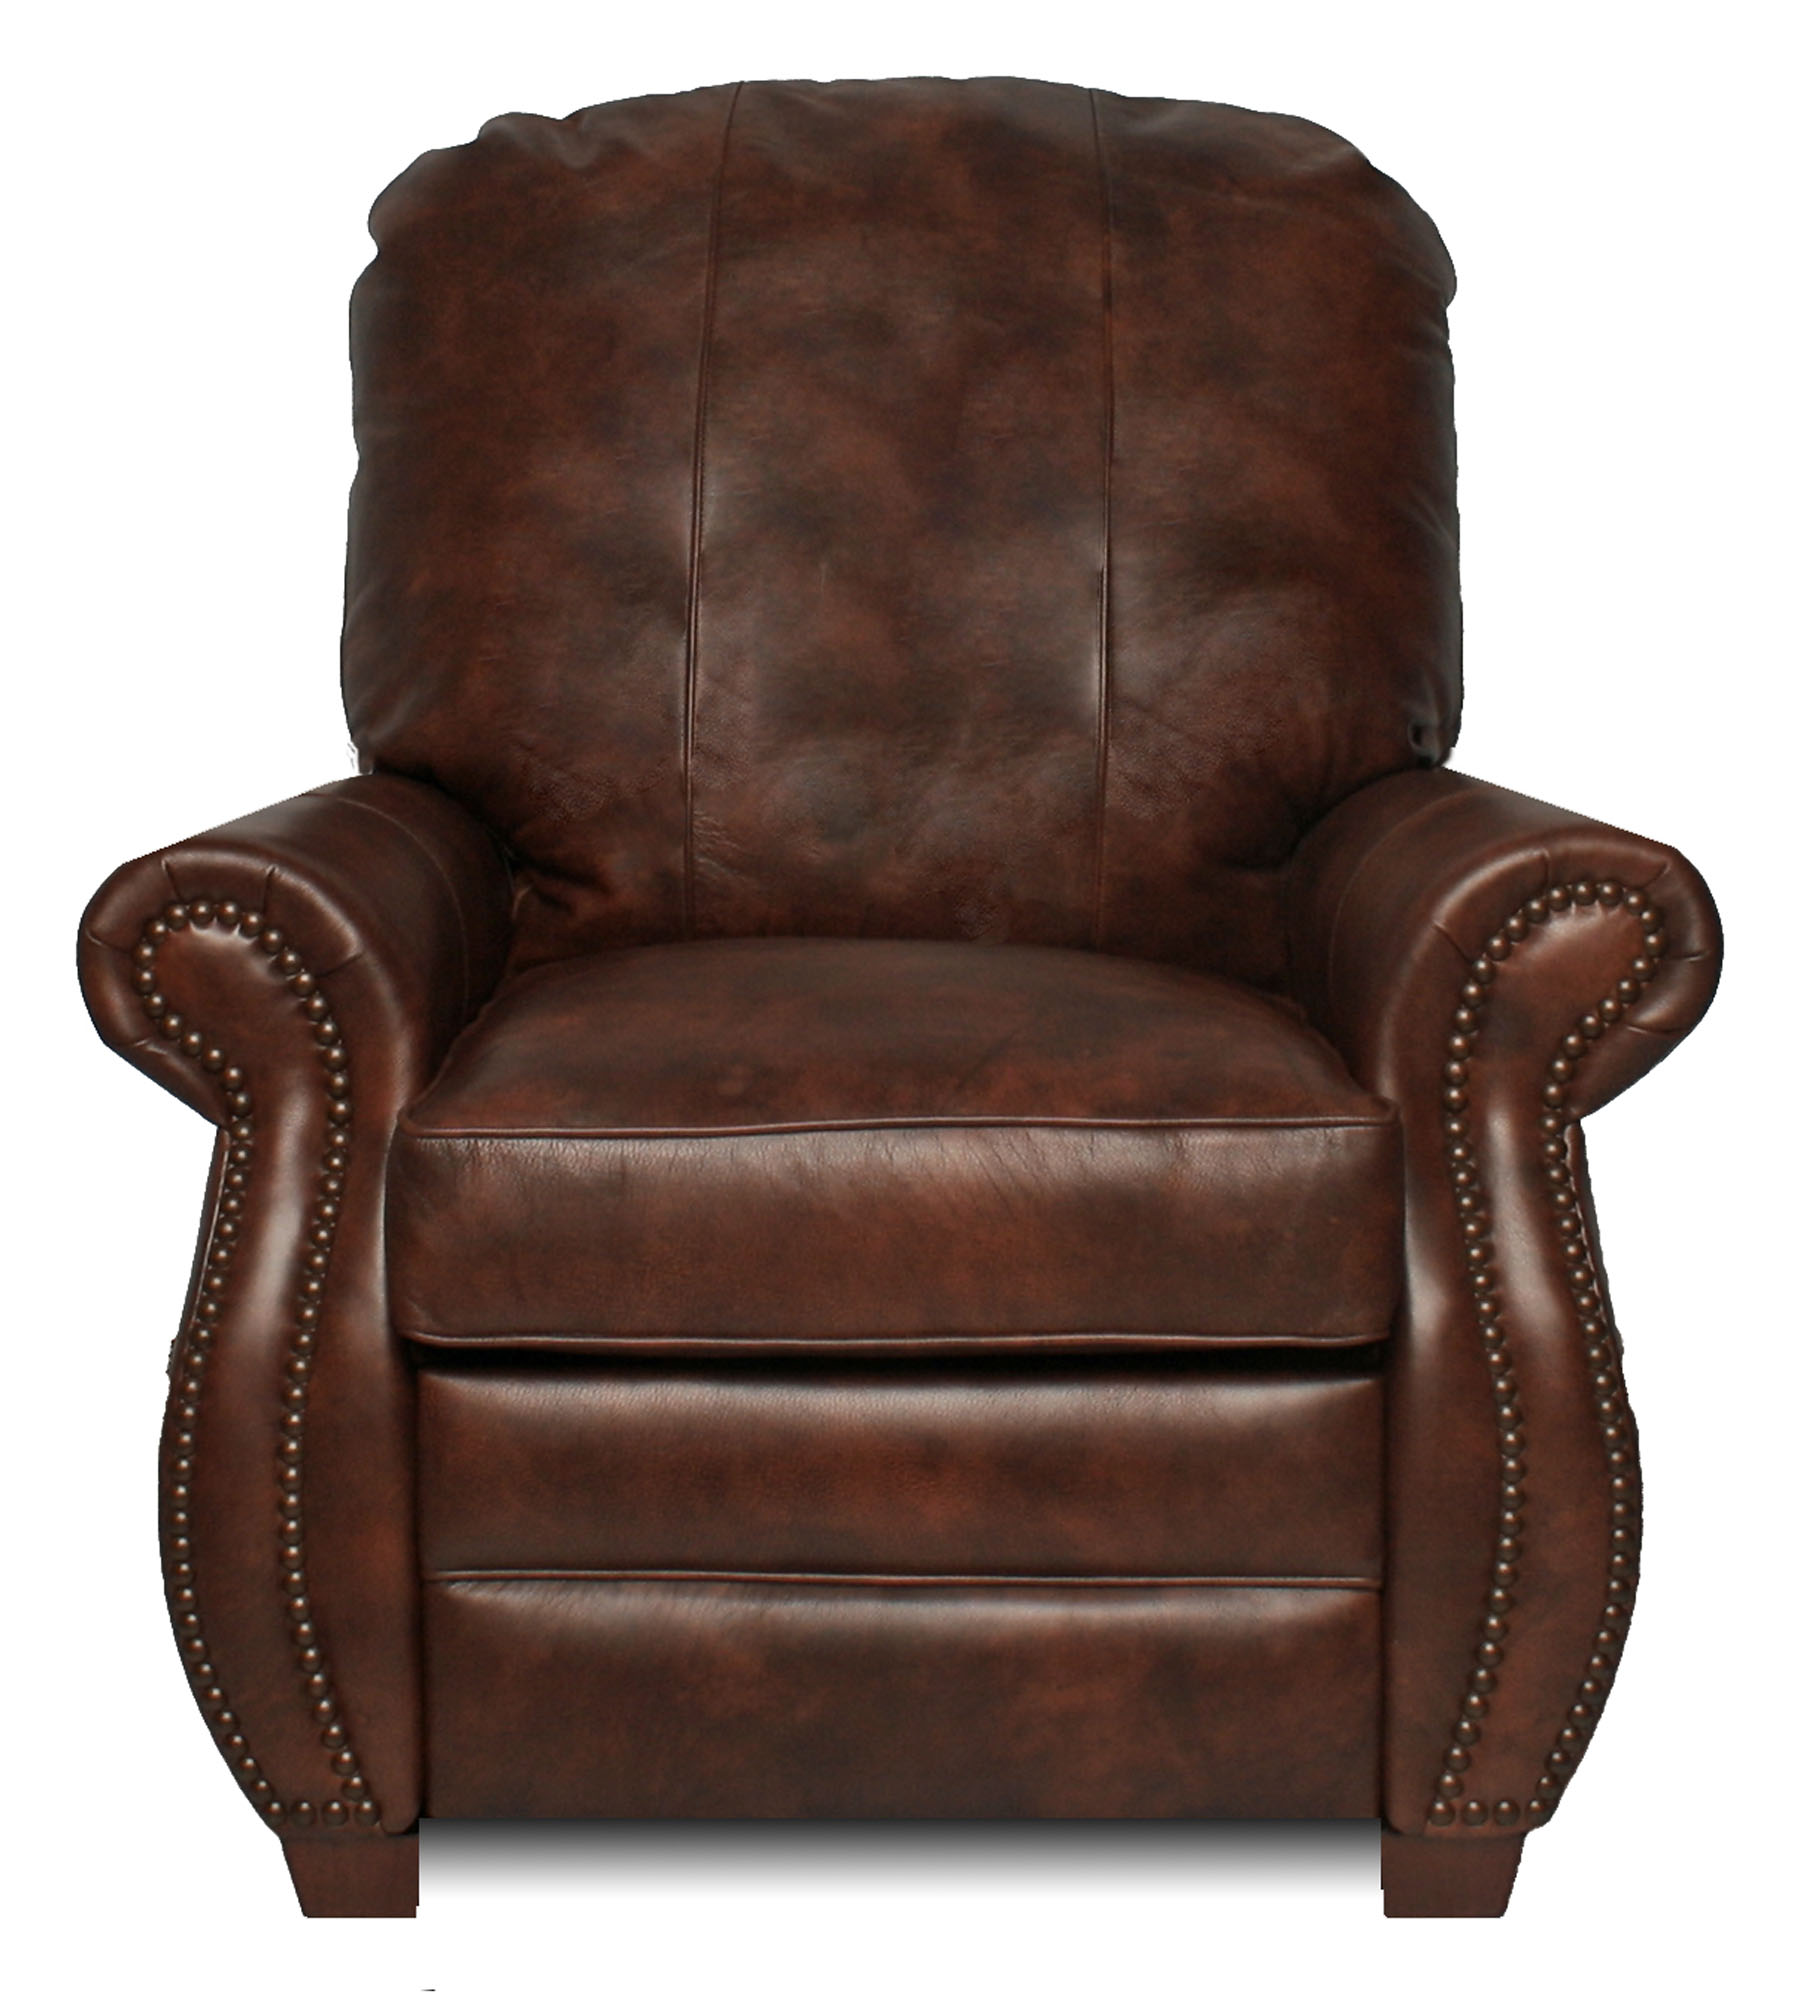 Electric Recliner Leather Chairs Arizona Leather Recliner